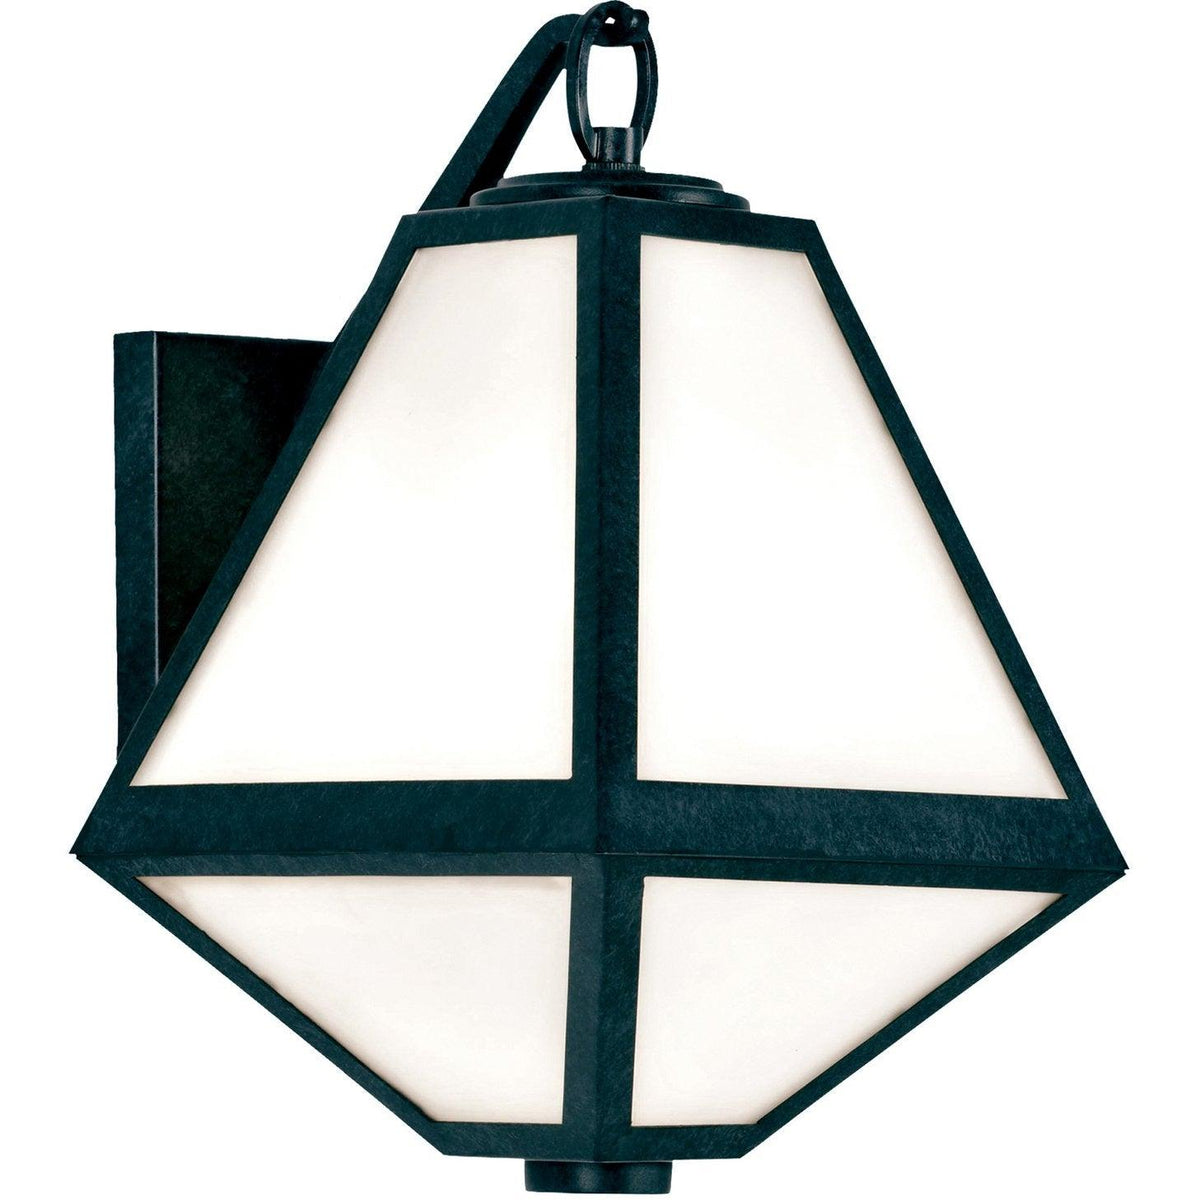 Crystorama - GLA-9701-OP-BC - One Light Outdoor Wall Mount - Glacier - Black Charcoal